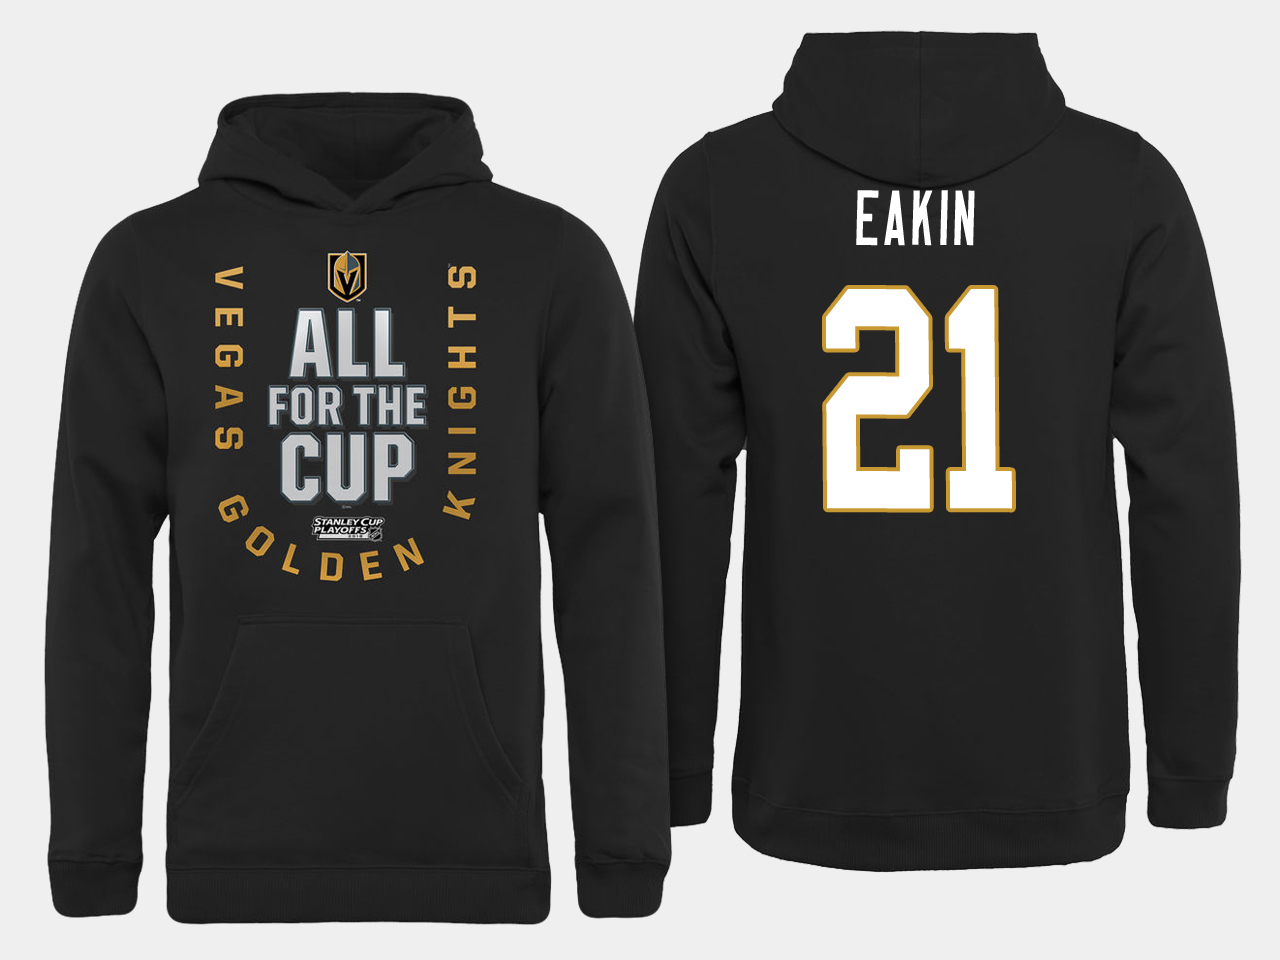 Men NHL Vegas Golden Knights 21 Eakin All for the Cup hoodie